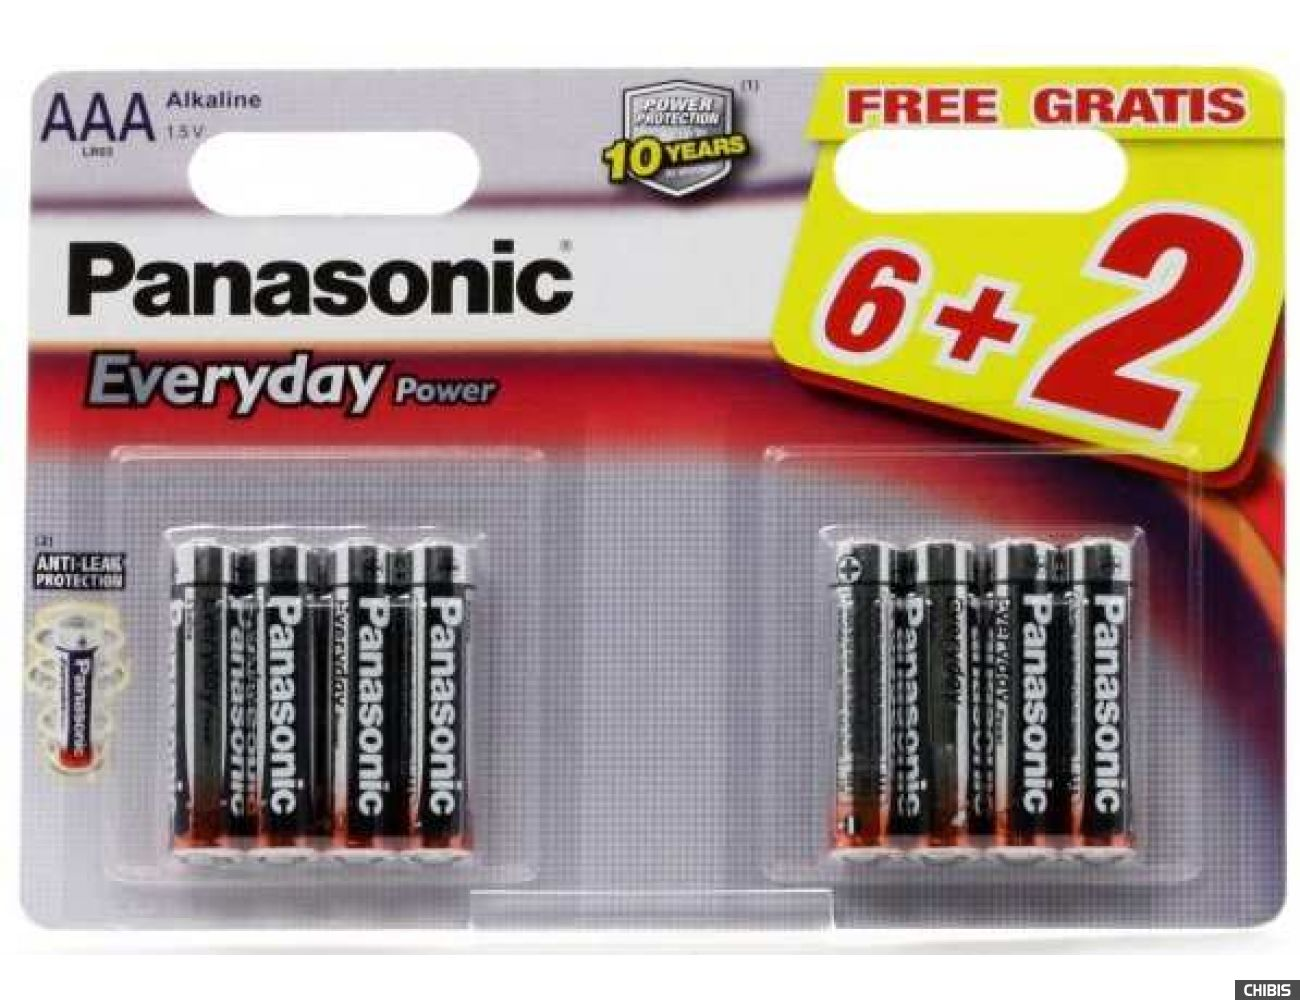 Батарейка ААА Panasonic Everyday Power 6+2 LR06 1.5V alkaline блистер 8/8 шт